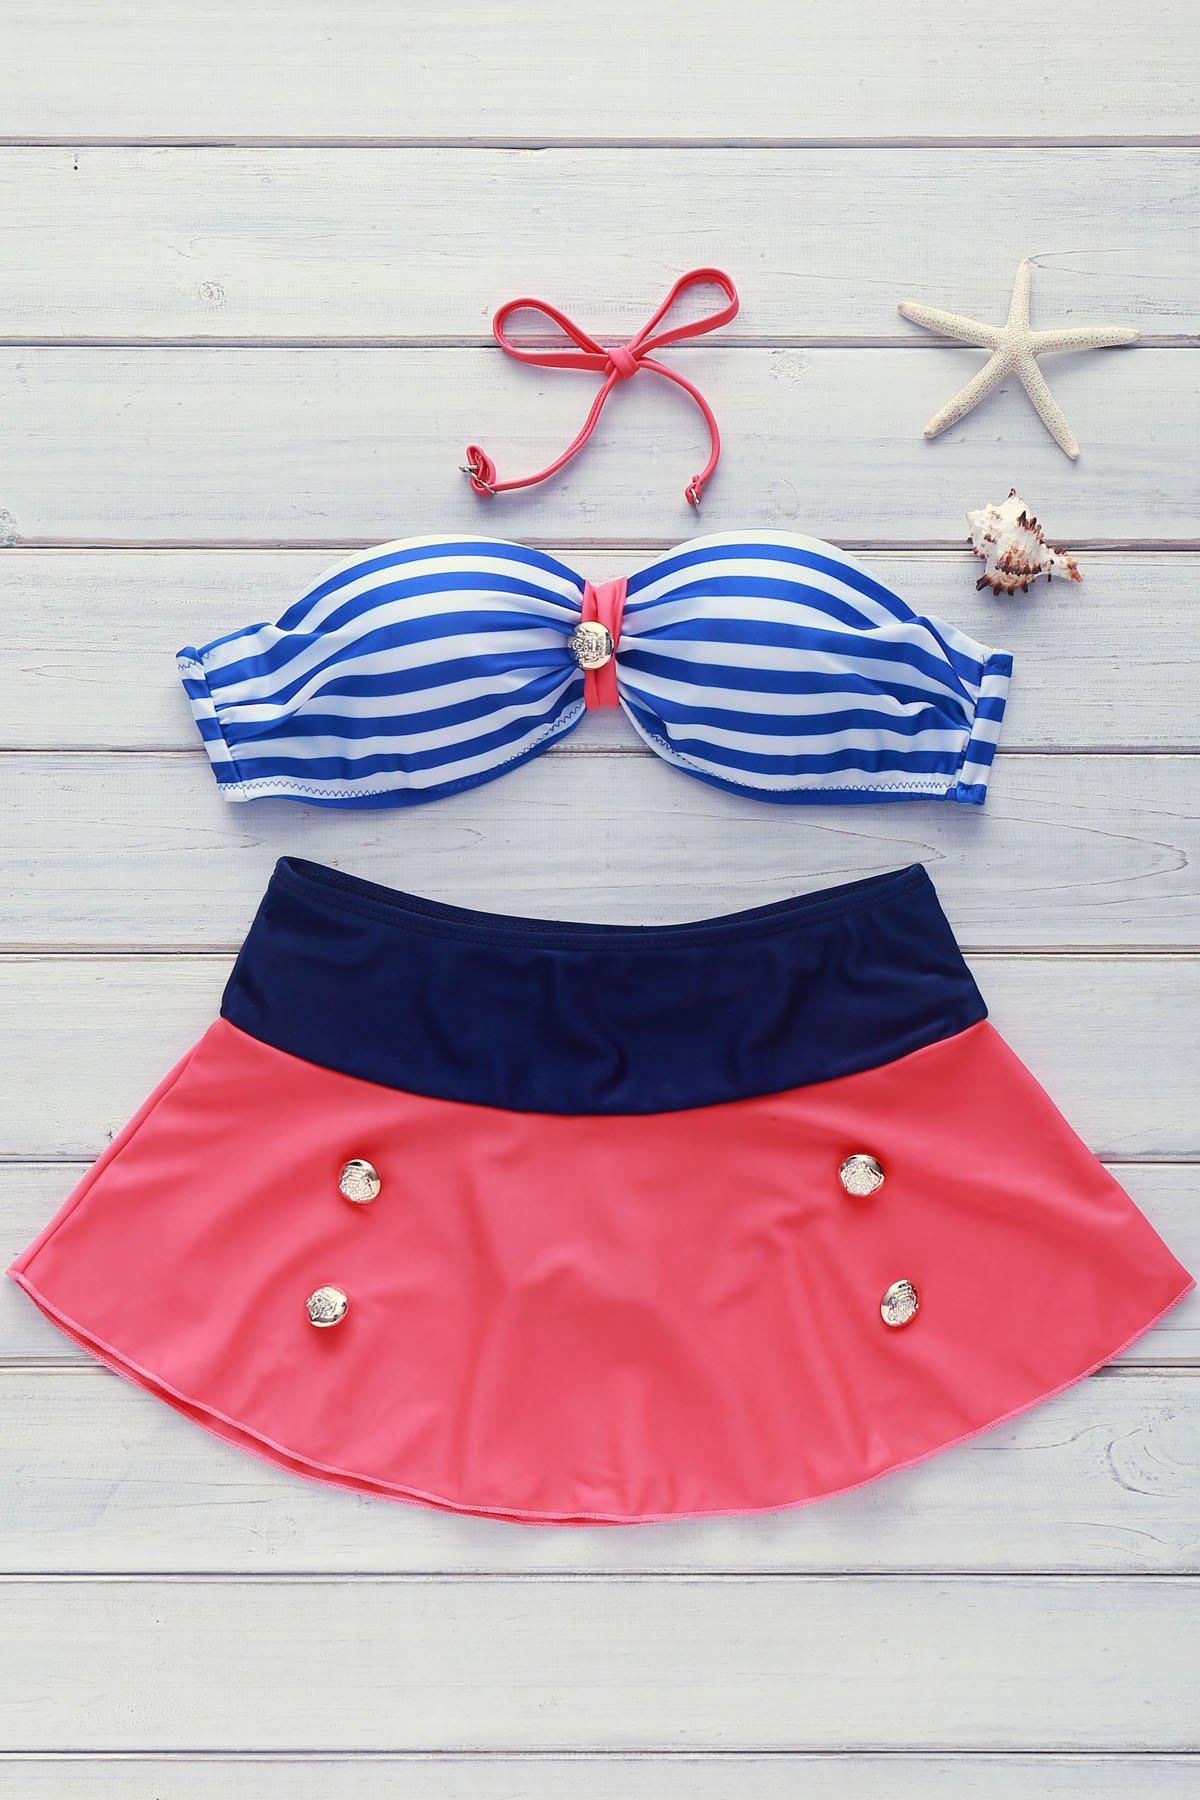 High Waisted Buttons Decoration Stripe Swimsuit - COLOEMIX S